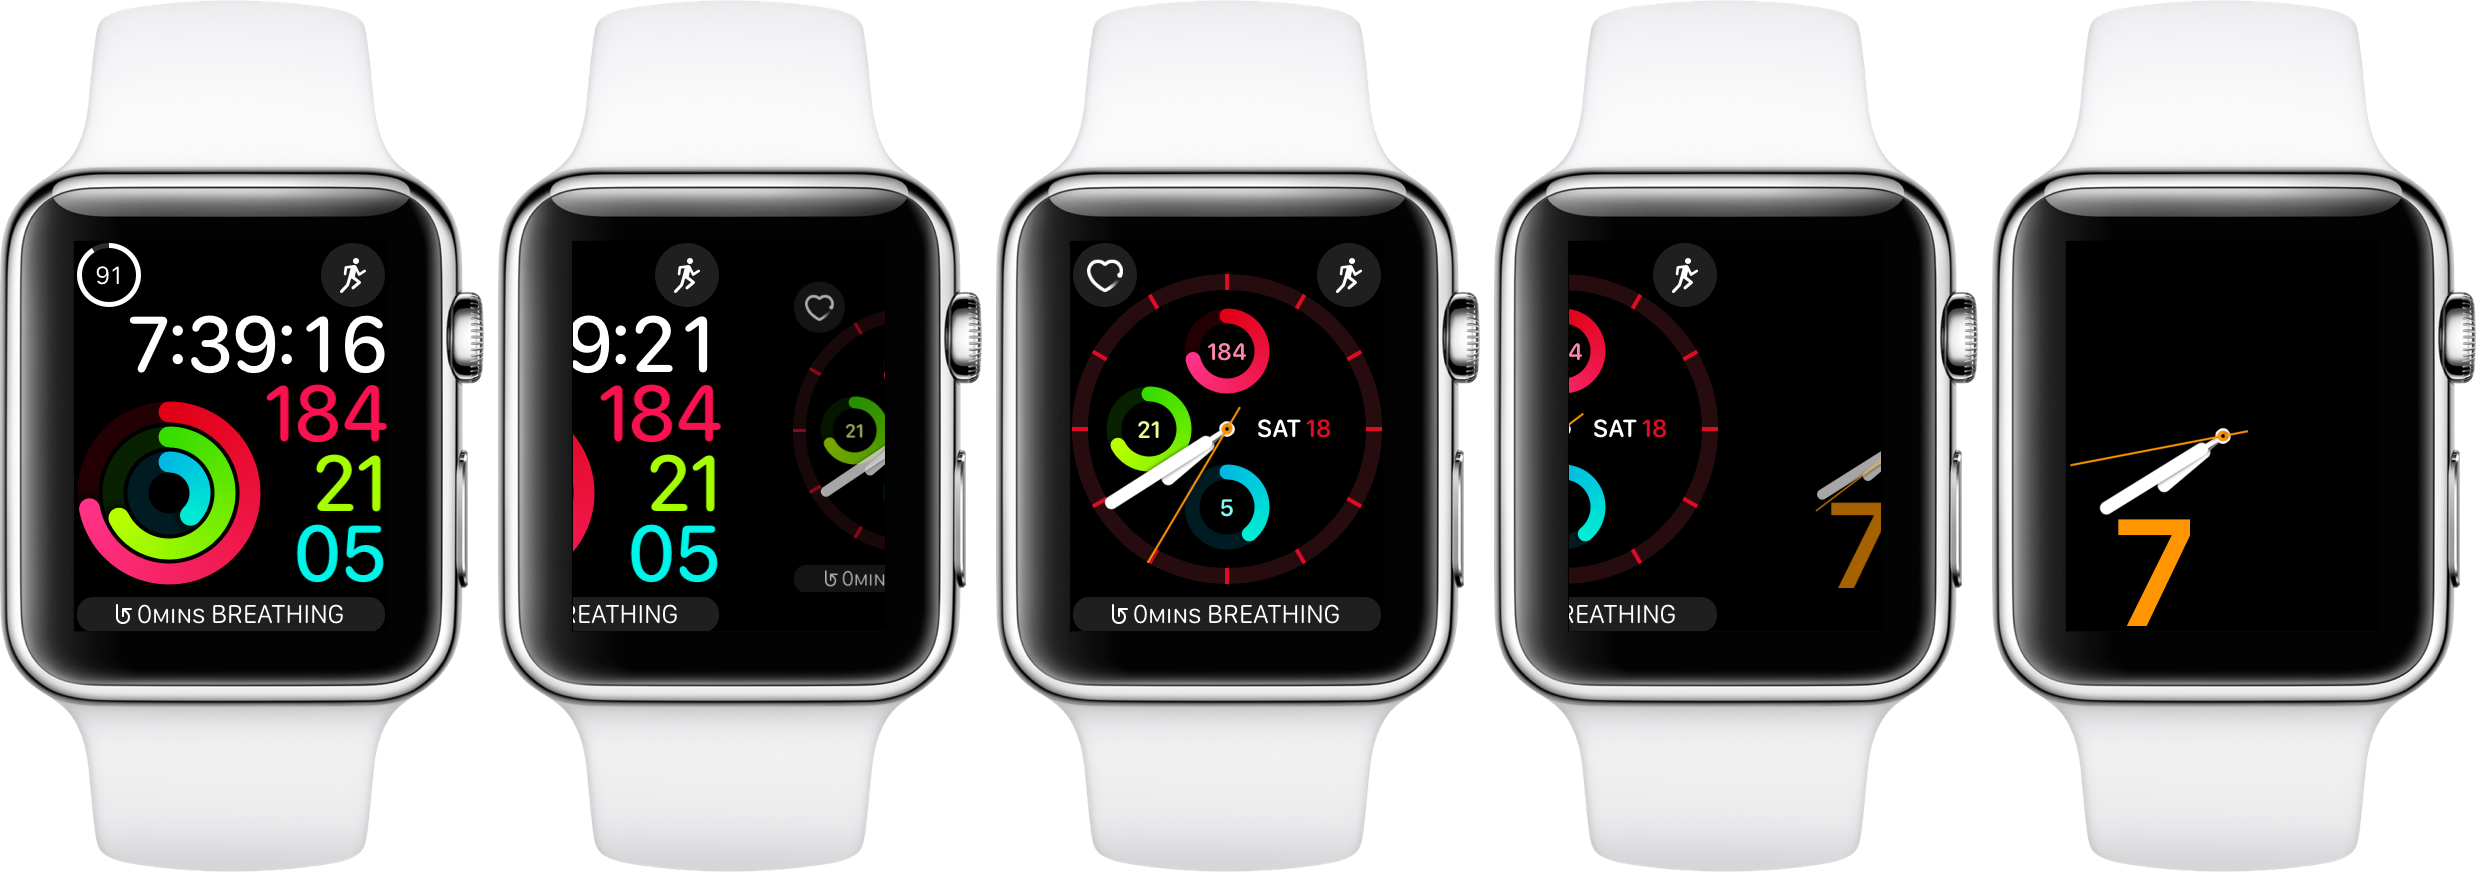 watchos-3-switching-faces-apple-watch-screenshot-001